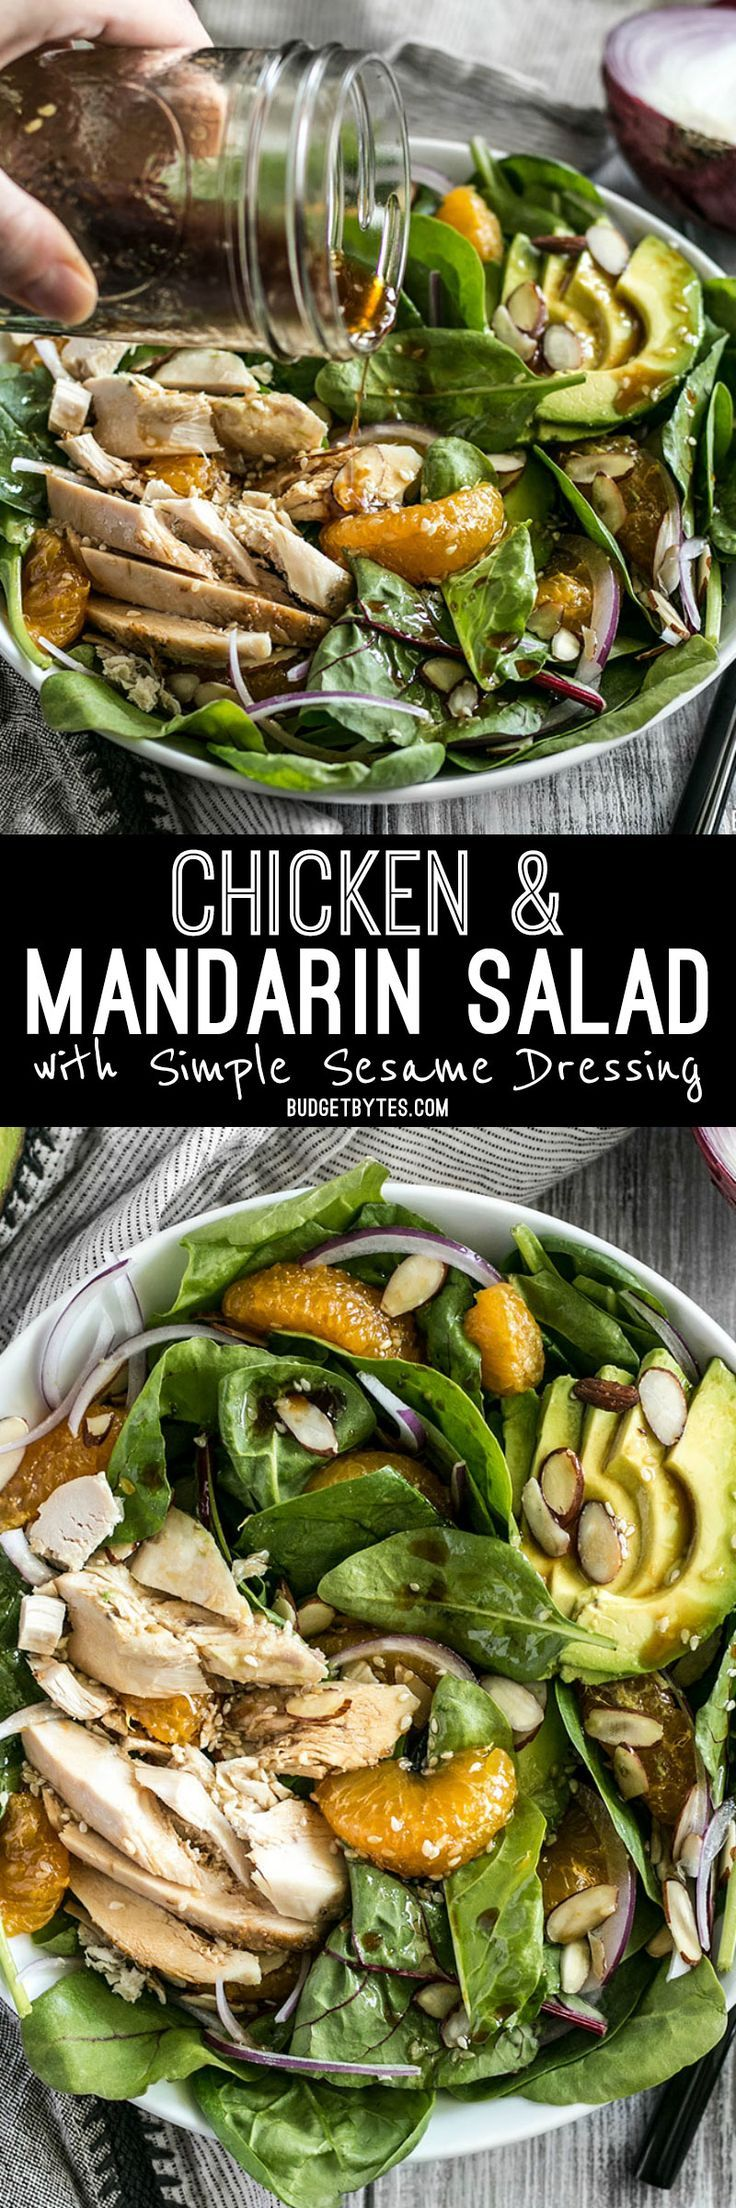 This meal-worthy Chicken and Mandarin Salad boasts sweet mandarin oranges, creamy avocado, crunchy almonds, and homemade sesame dressing.